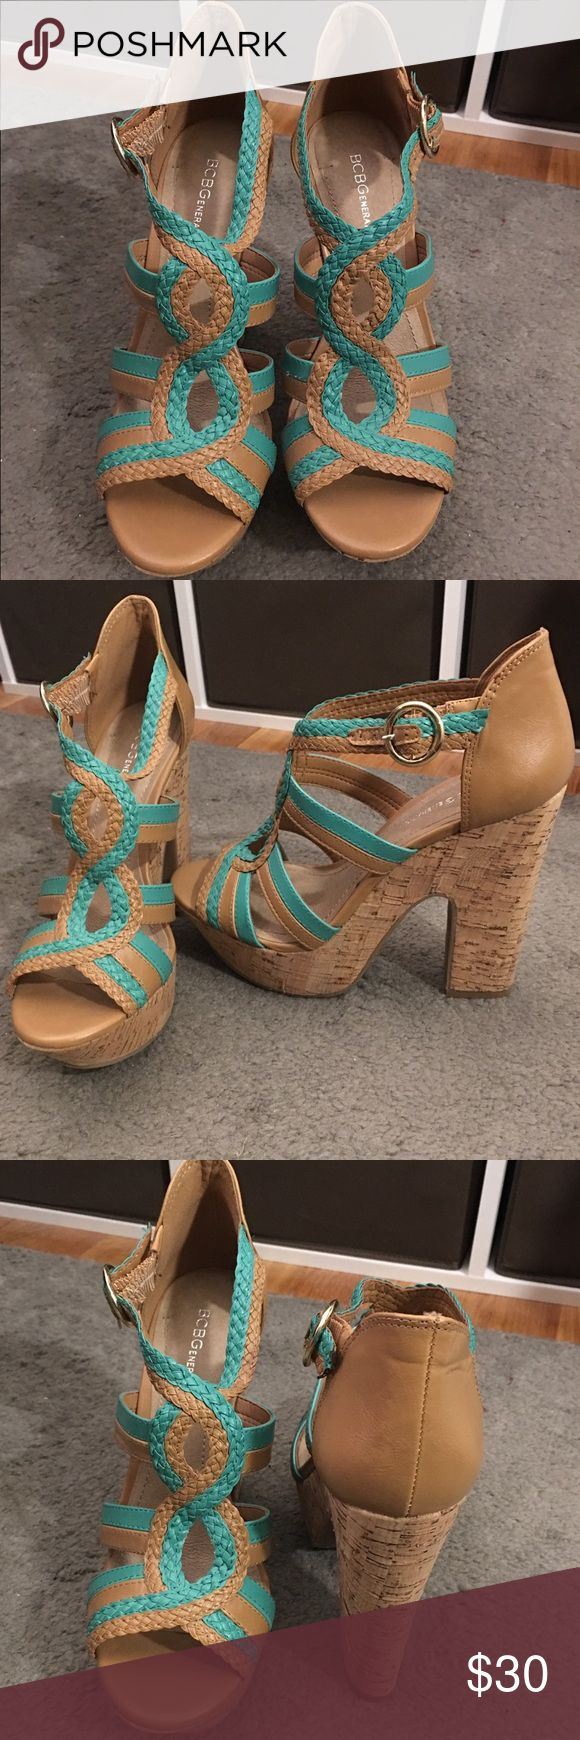 BCBGeneration chunky cork heels NWOT!! Tan and teal wedges with chunky cork heel and buckle strap super fun for summer!! BCBGeneration Shoes Wedges